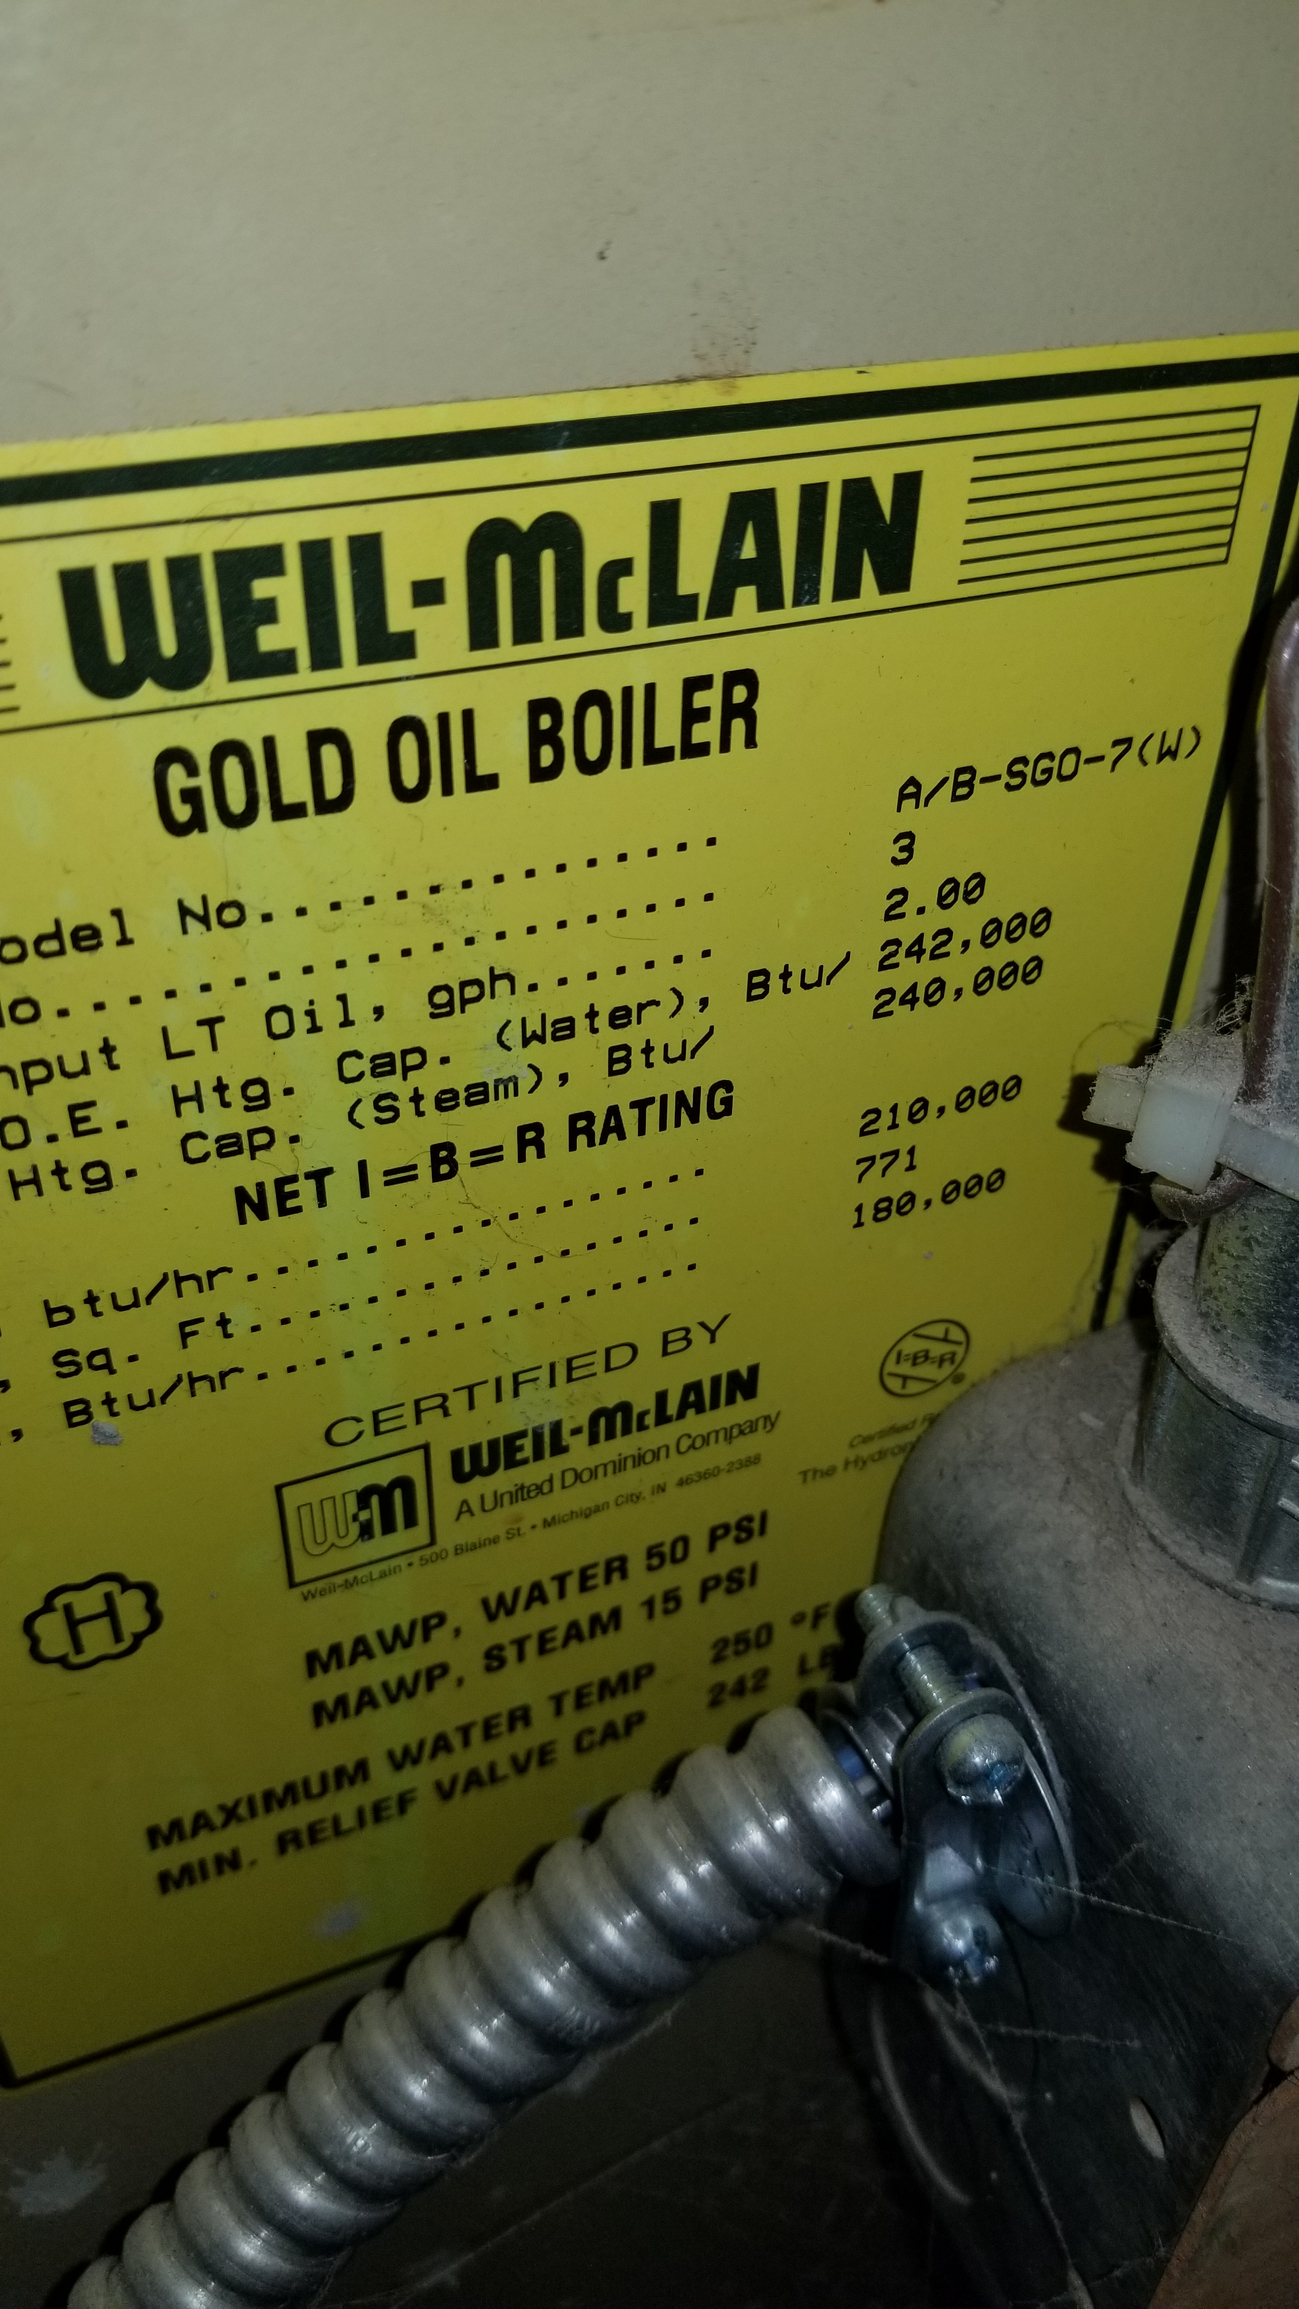 Wifi Thermostat With Weil Mclain Boiler  U2014 Heating Help